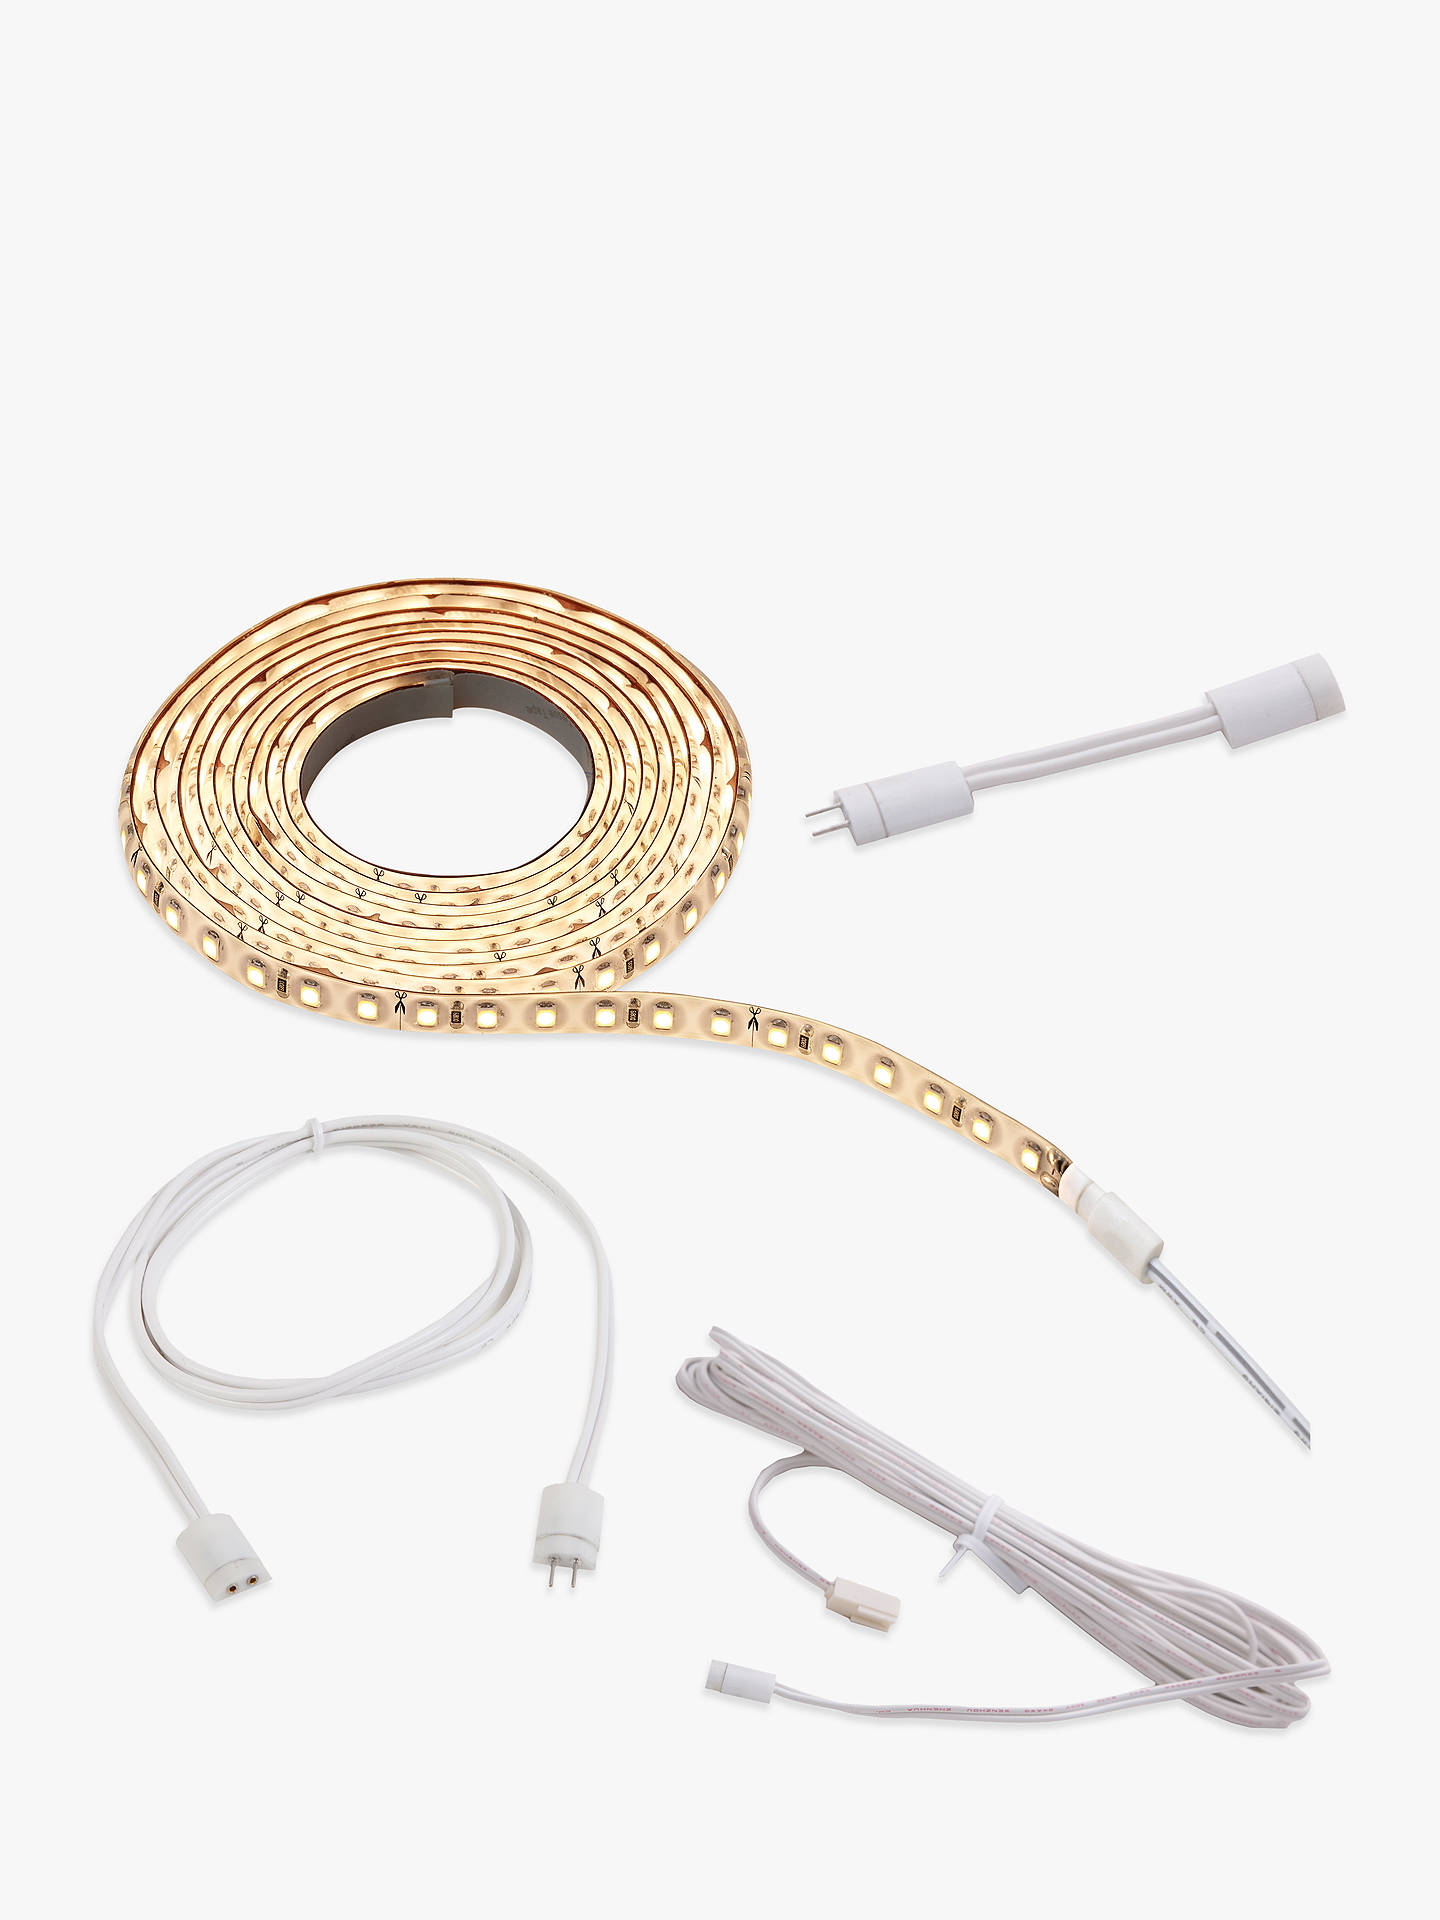 BuySensio Viva LED Flexible Light Strip Add-On Pack, 2m, Warm White Online at johnlewis.com